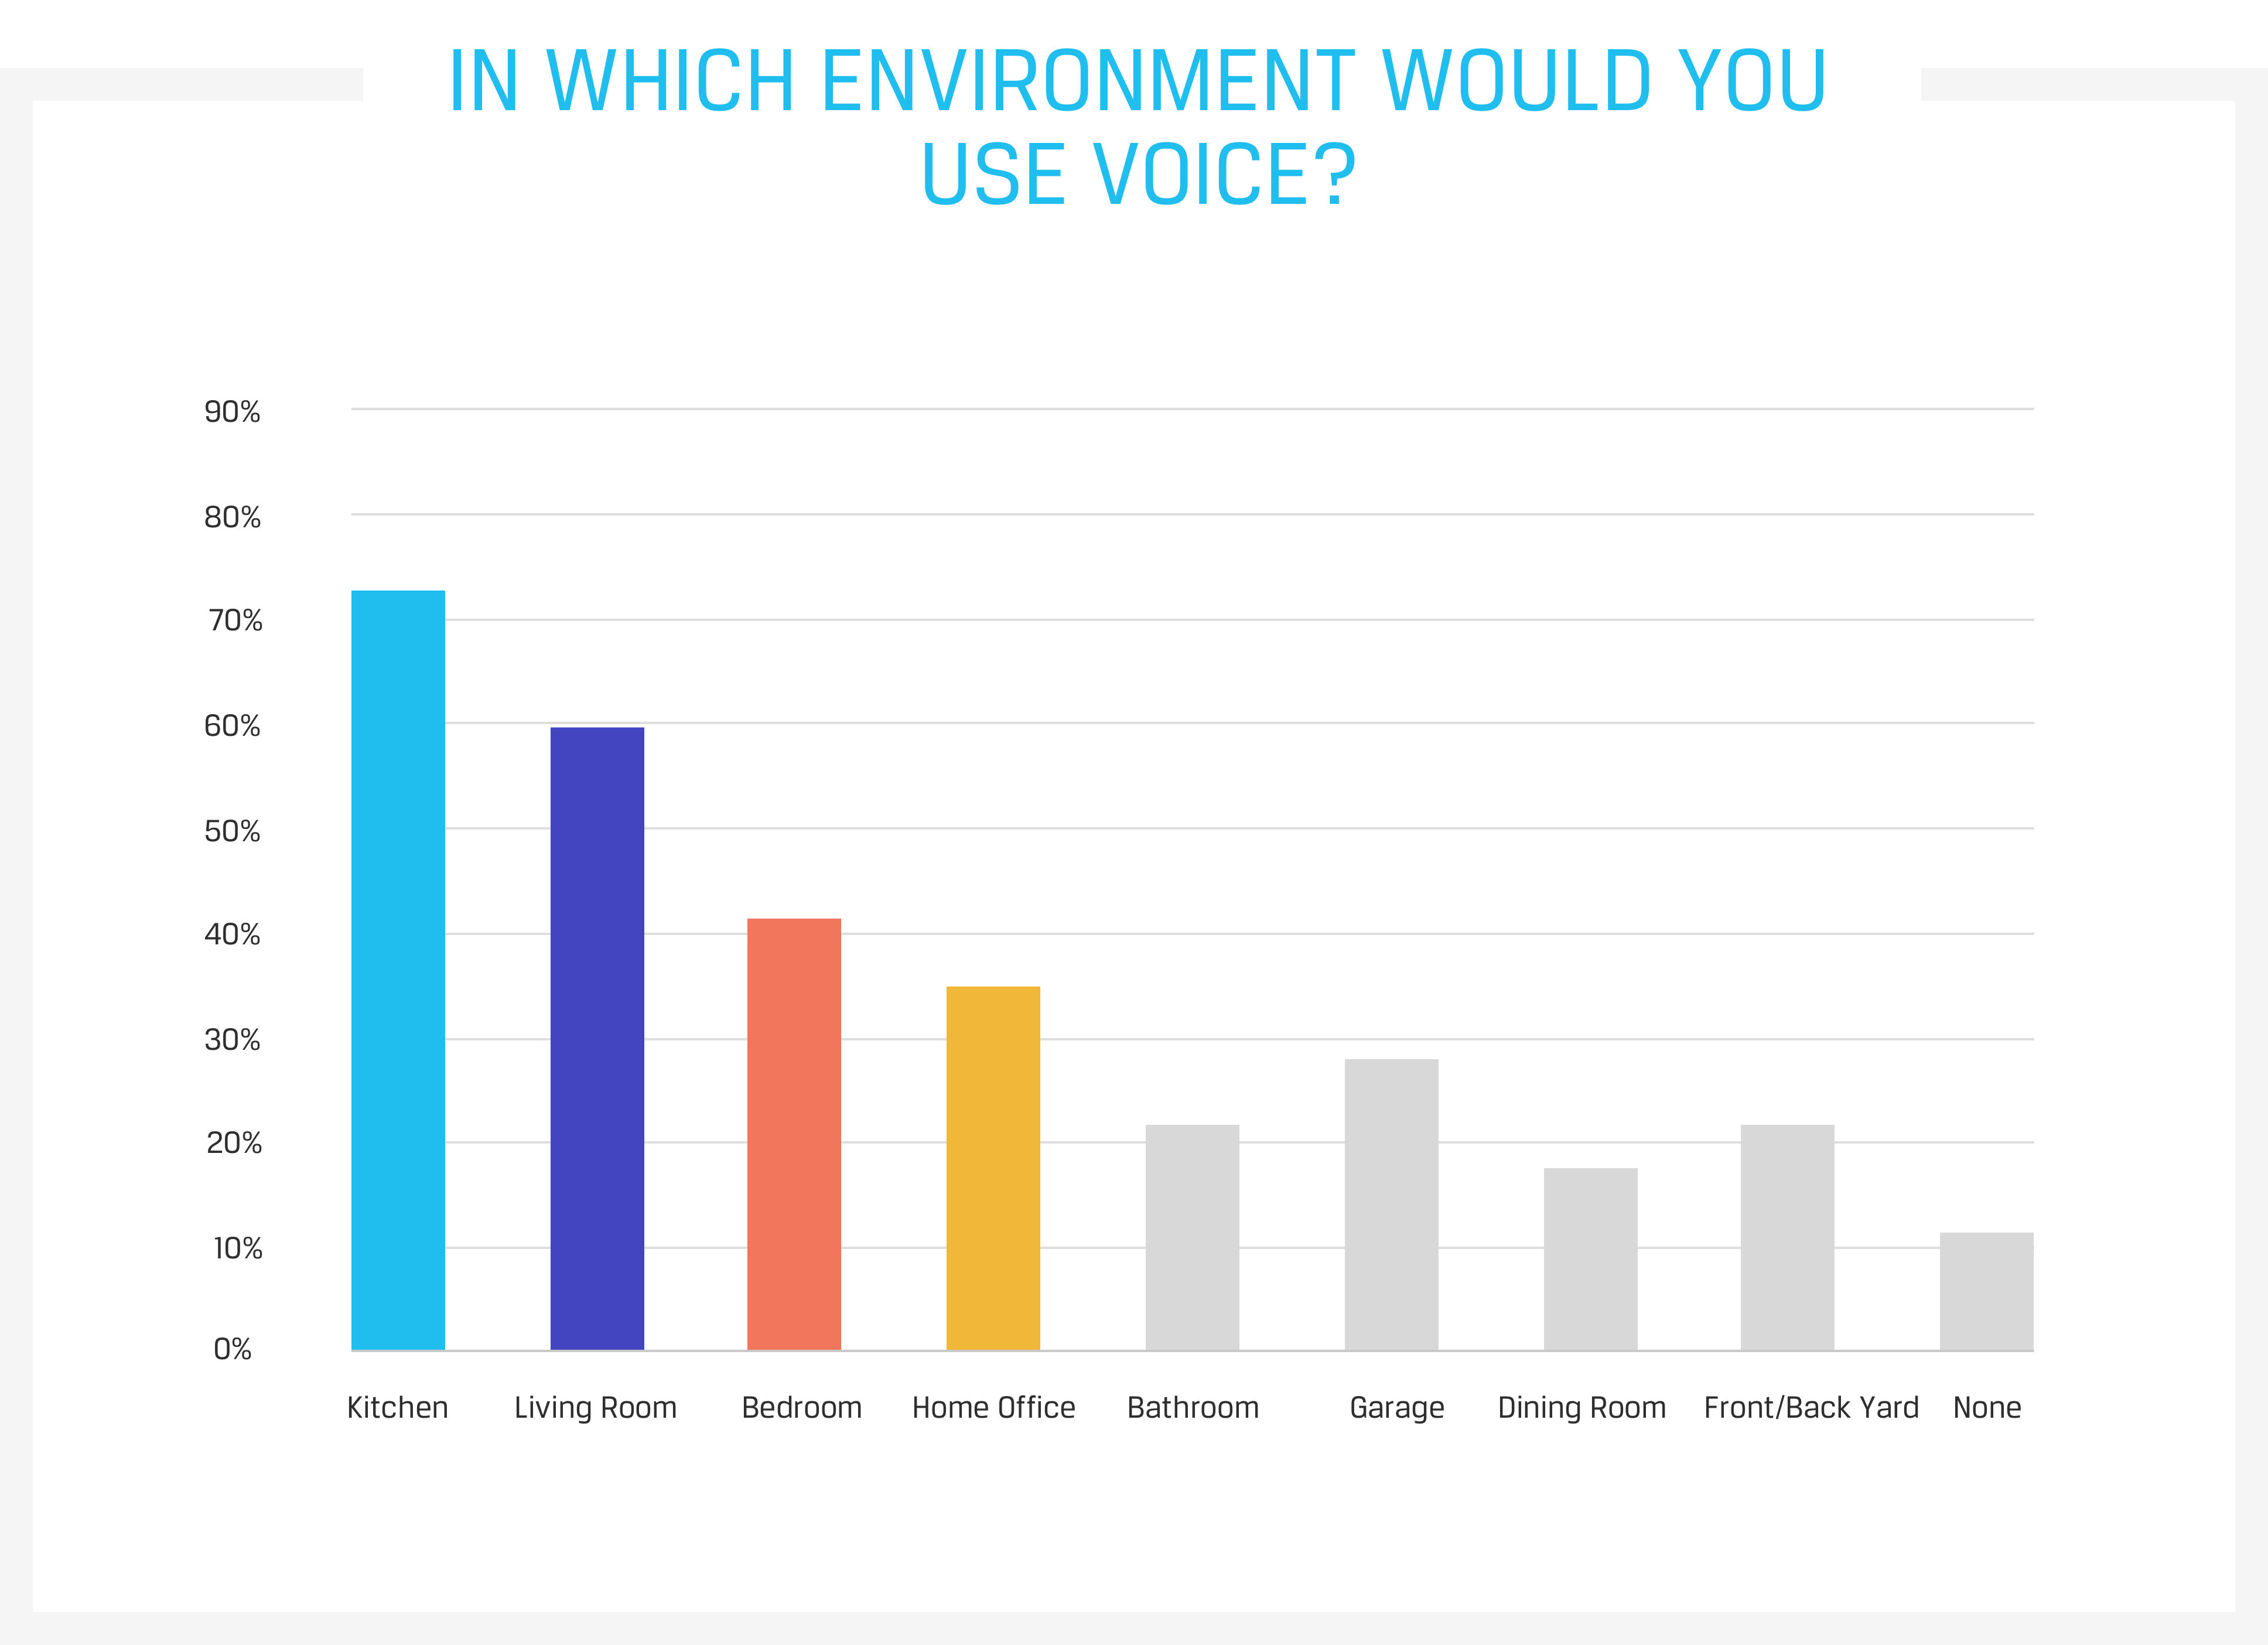 In which environment would you use voice?